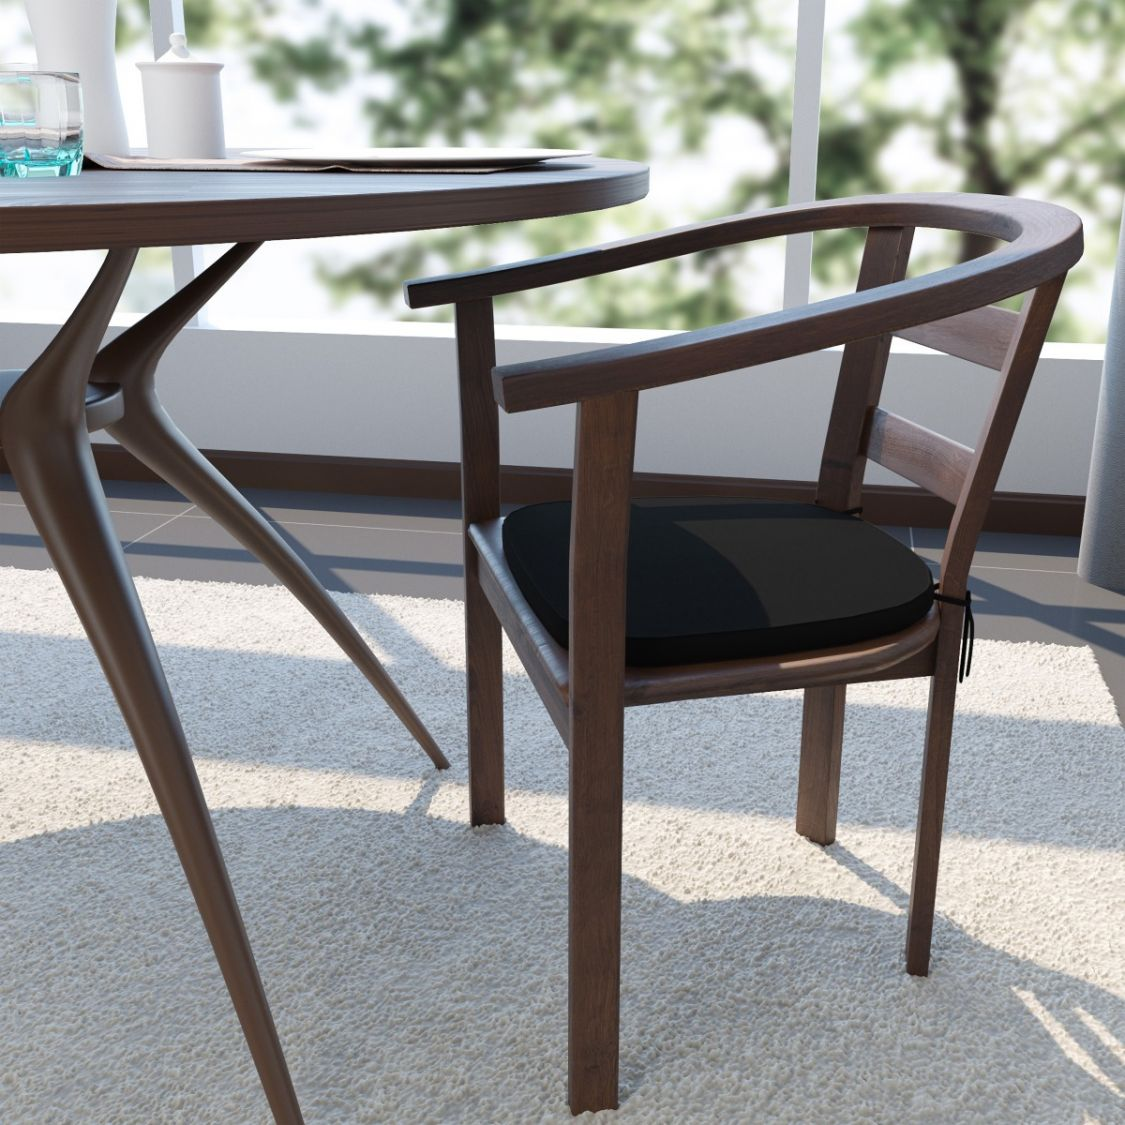 cushion pads for dining chairs